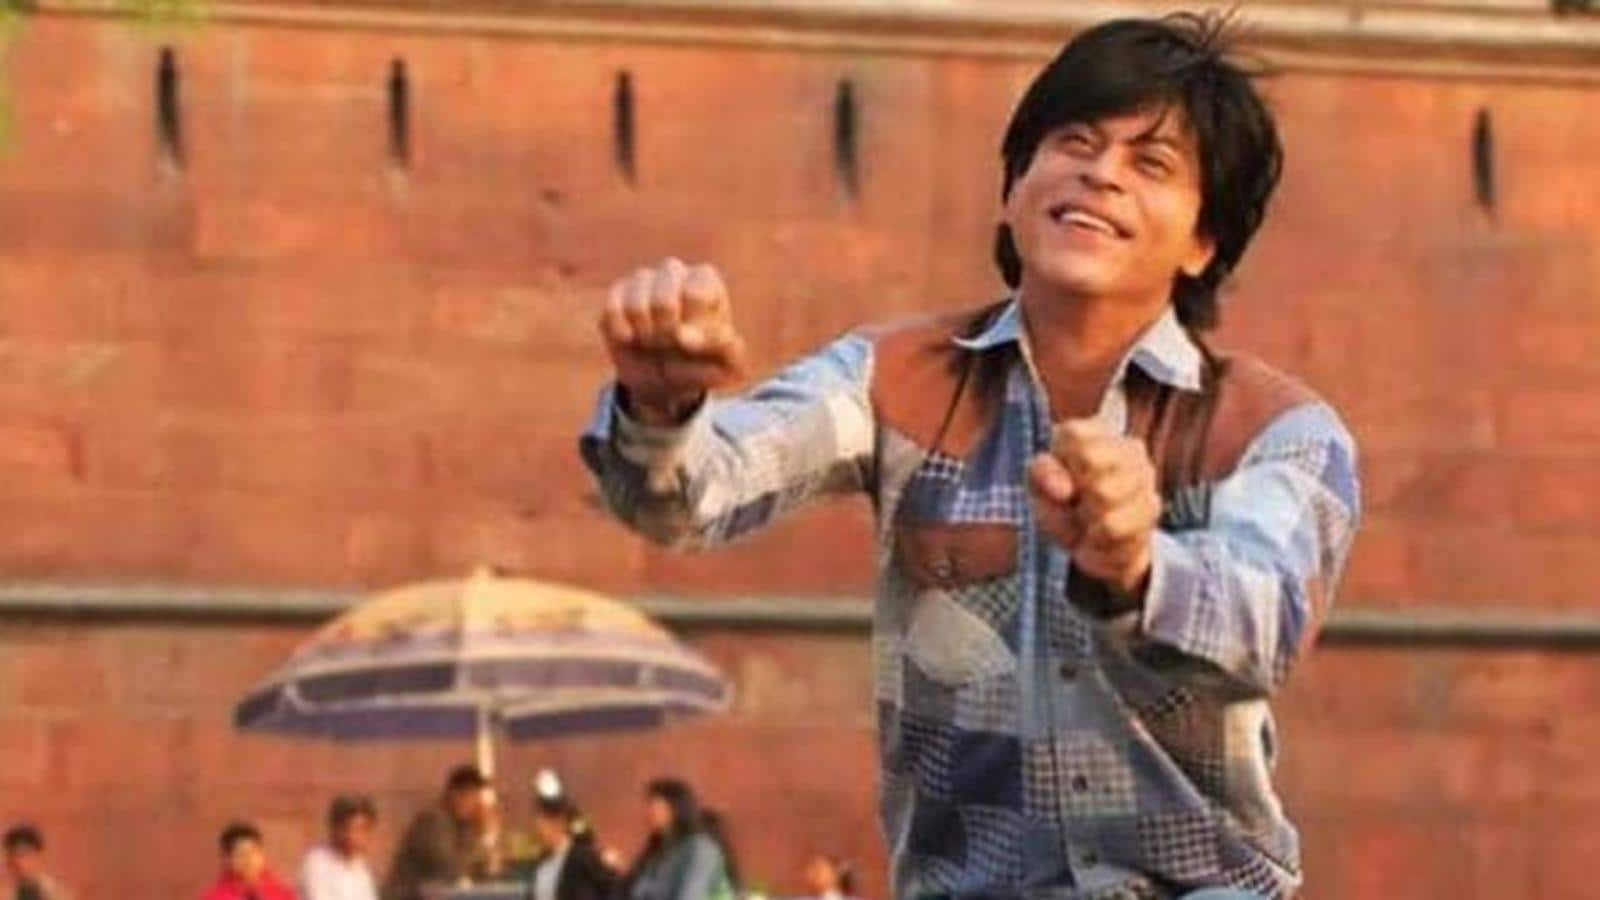 Why promote song in trailer, edit it out in movie, SC asks Yash Raj Films